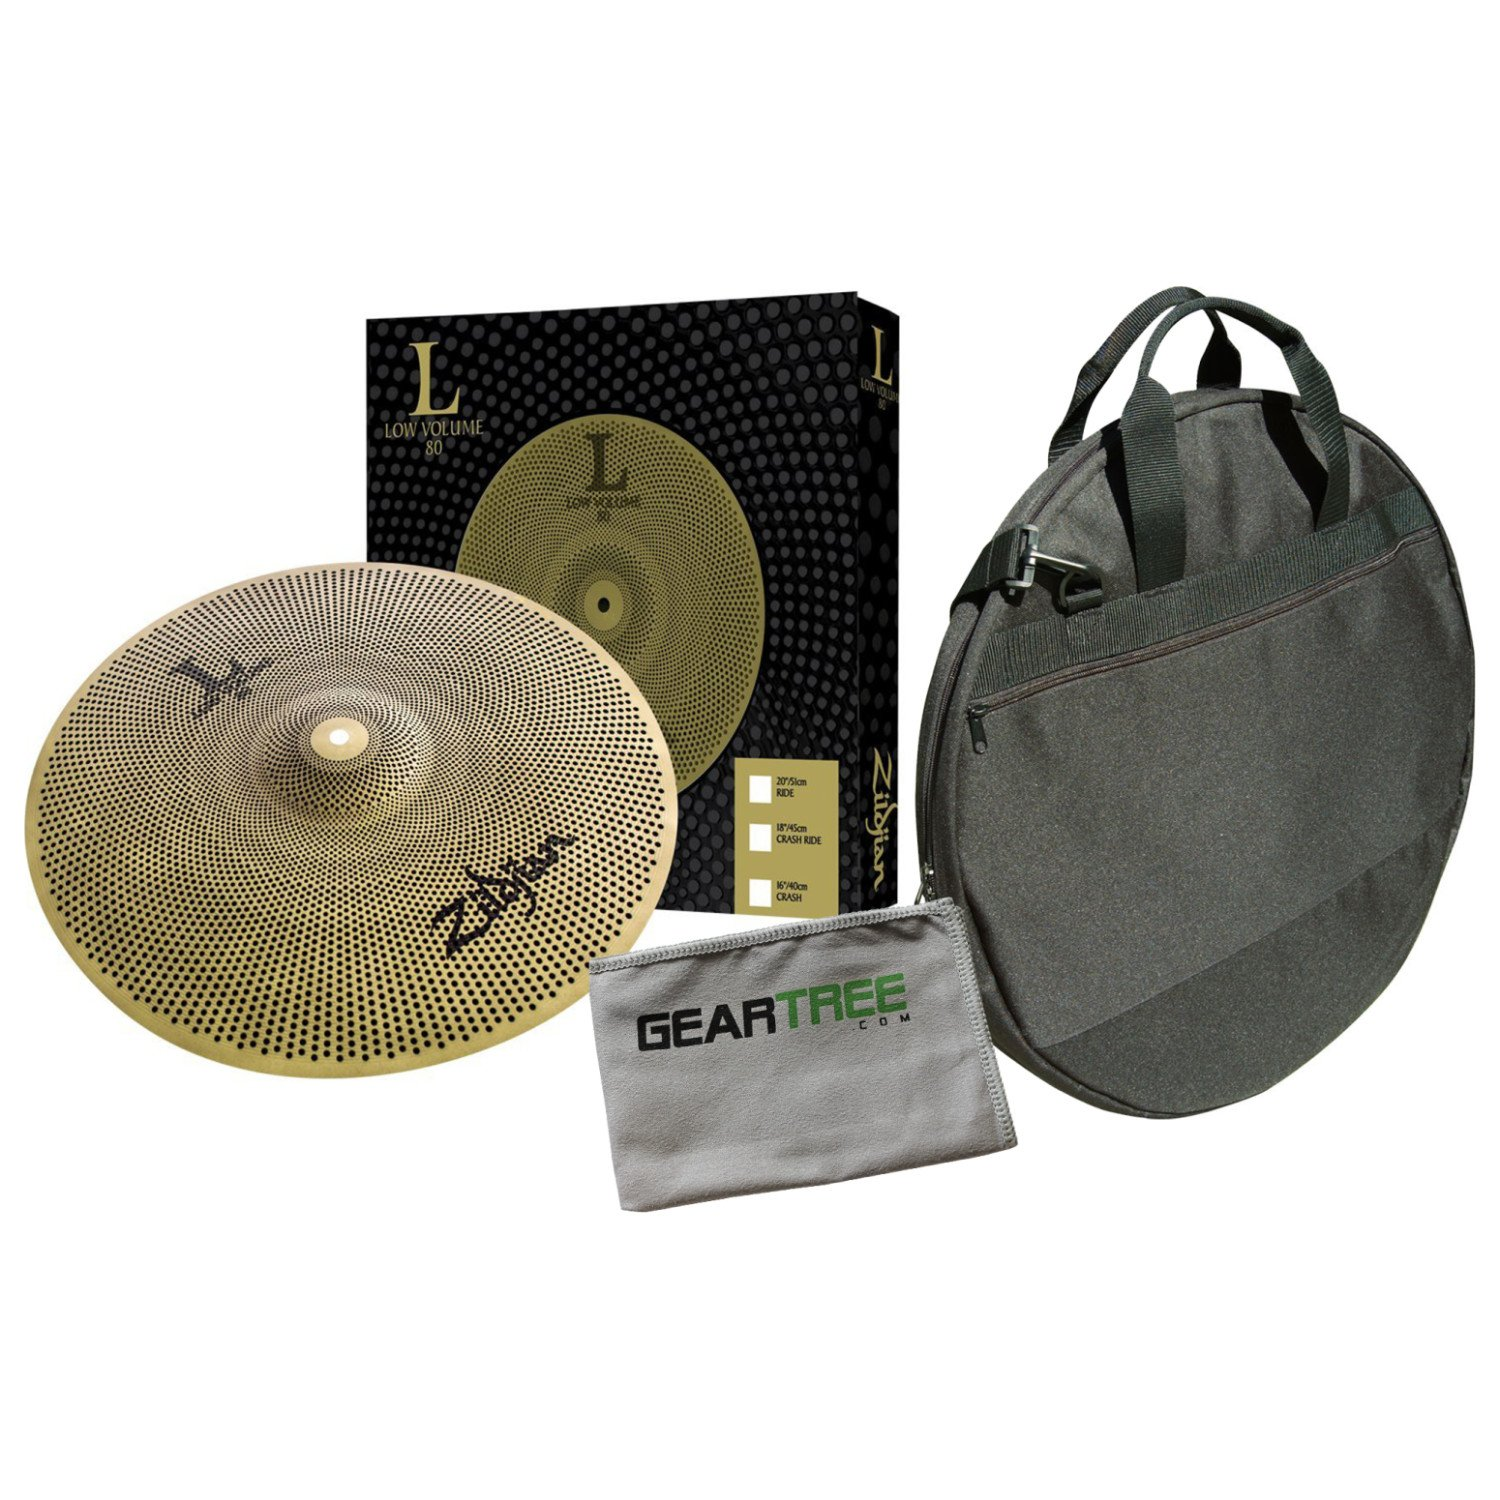 Zildjian L80 Low Volume 20 Inch Ride Cymbal w/Cleaning Cloth and Cymbal Bag